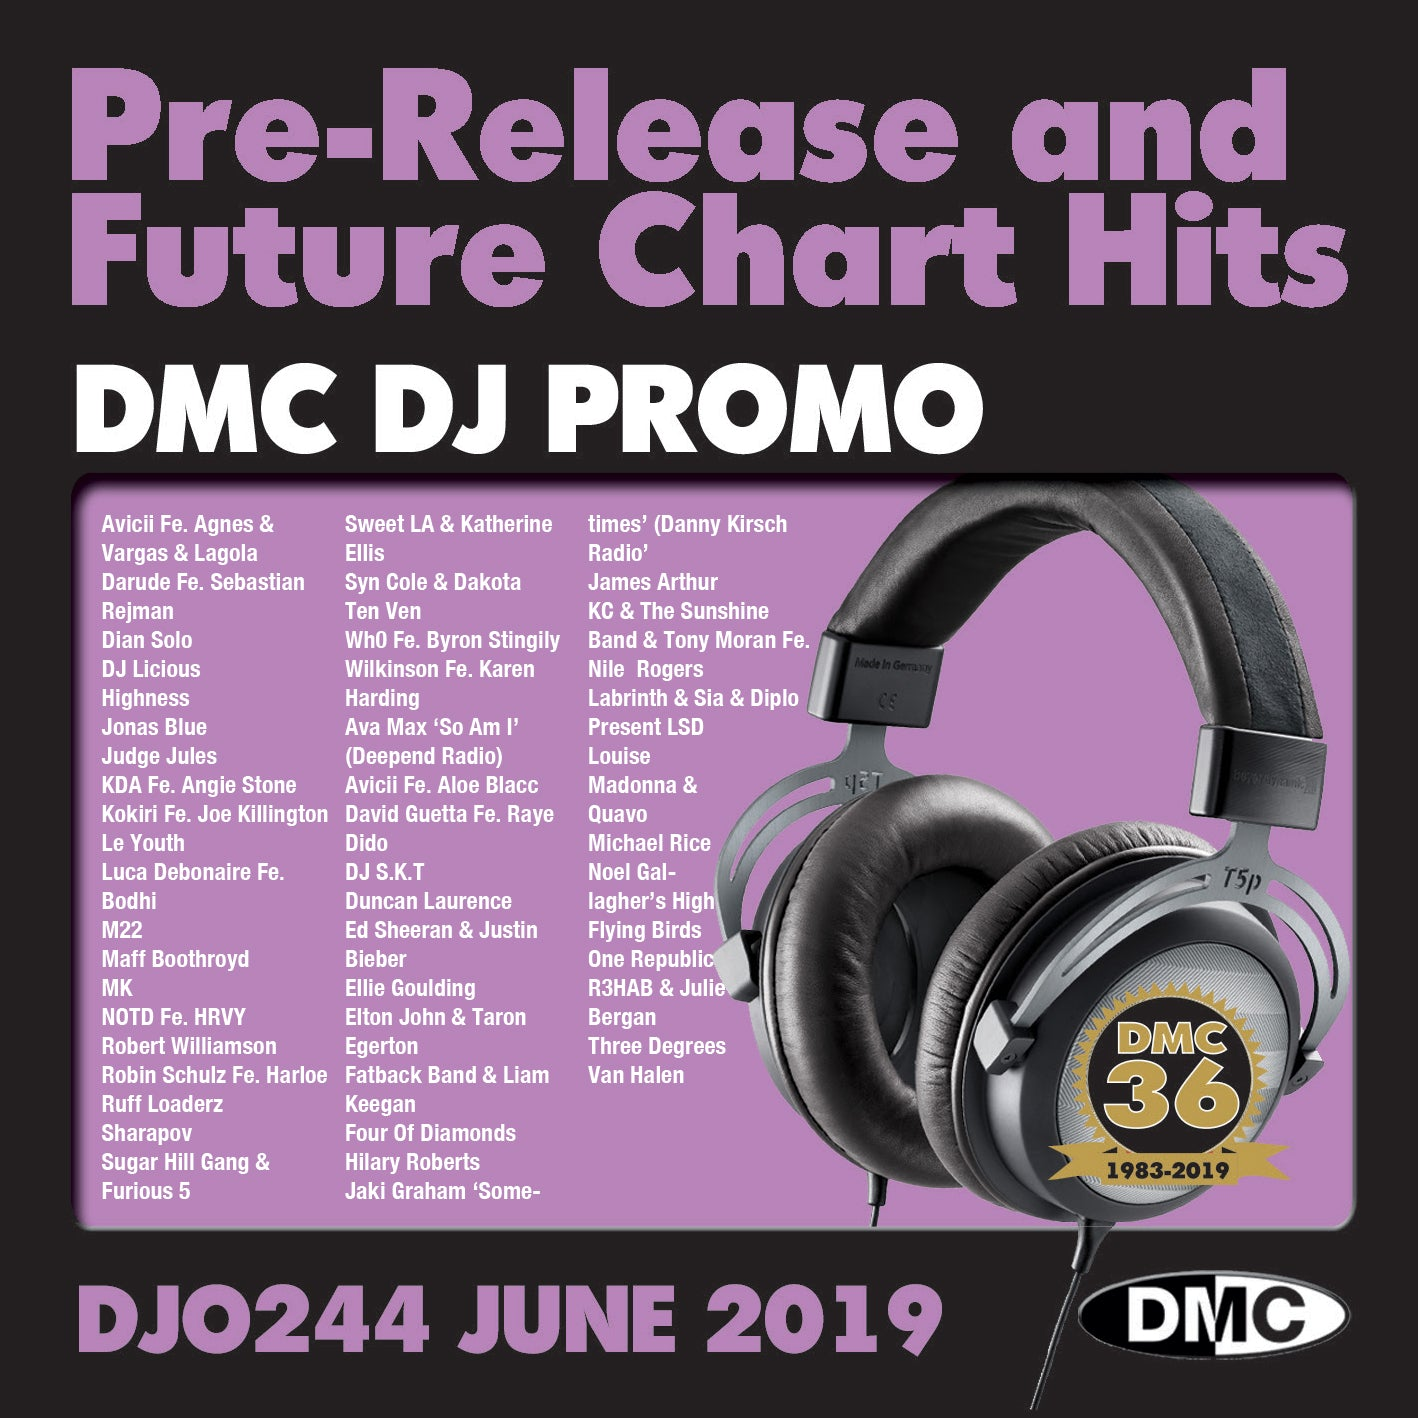 DJ PROMO 244 -  PRE RELEASE AND FUTURE CHART HITS  (2 x cd) - June 2019 release